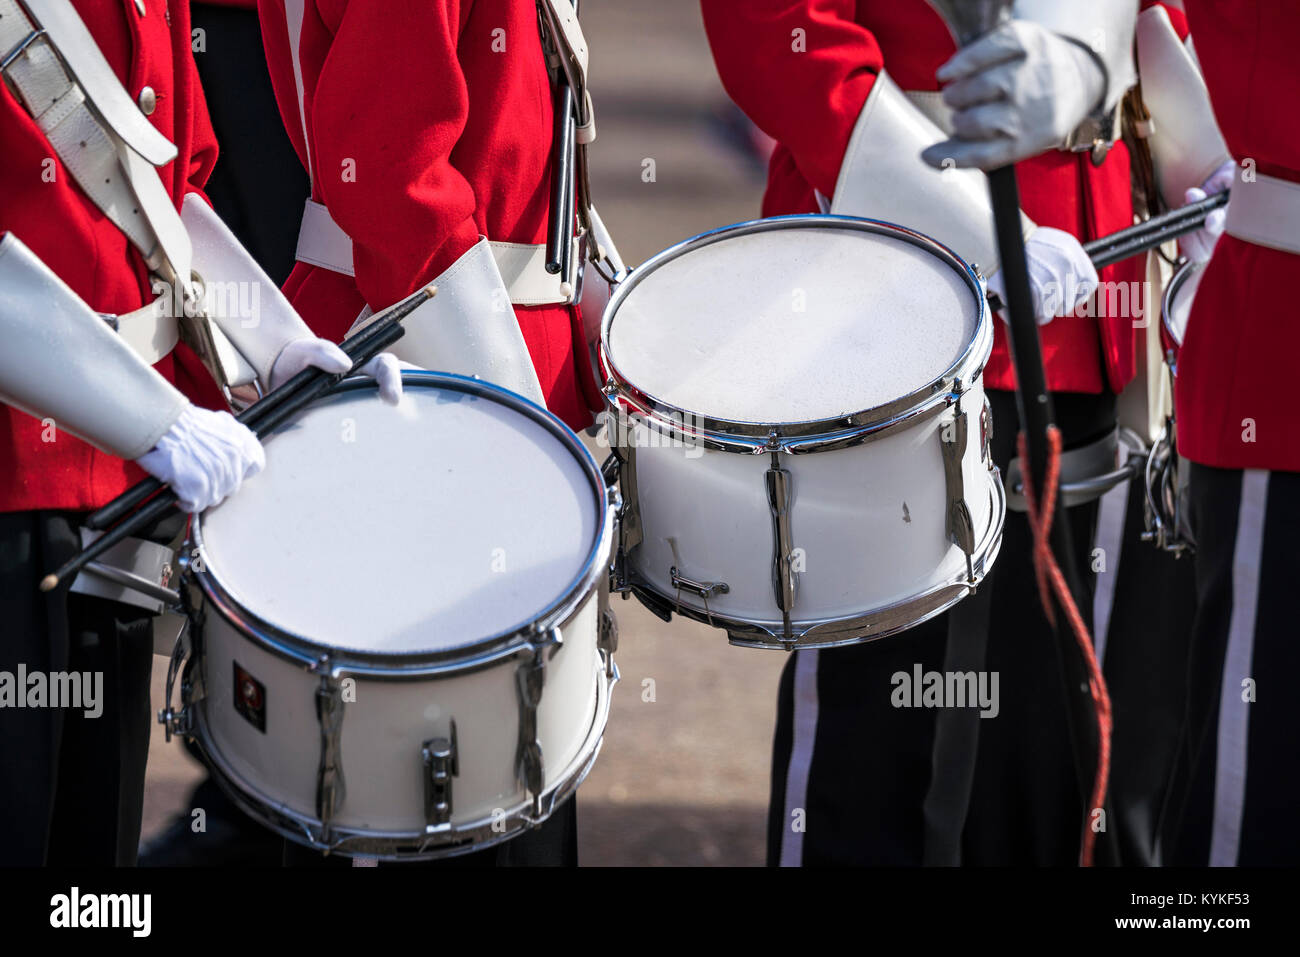 Soldiers in red uniforms with drums at a parade in the spring - Stock Image